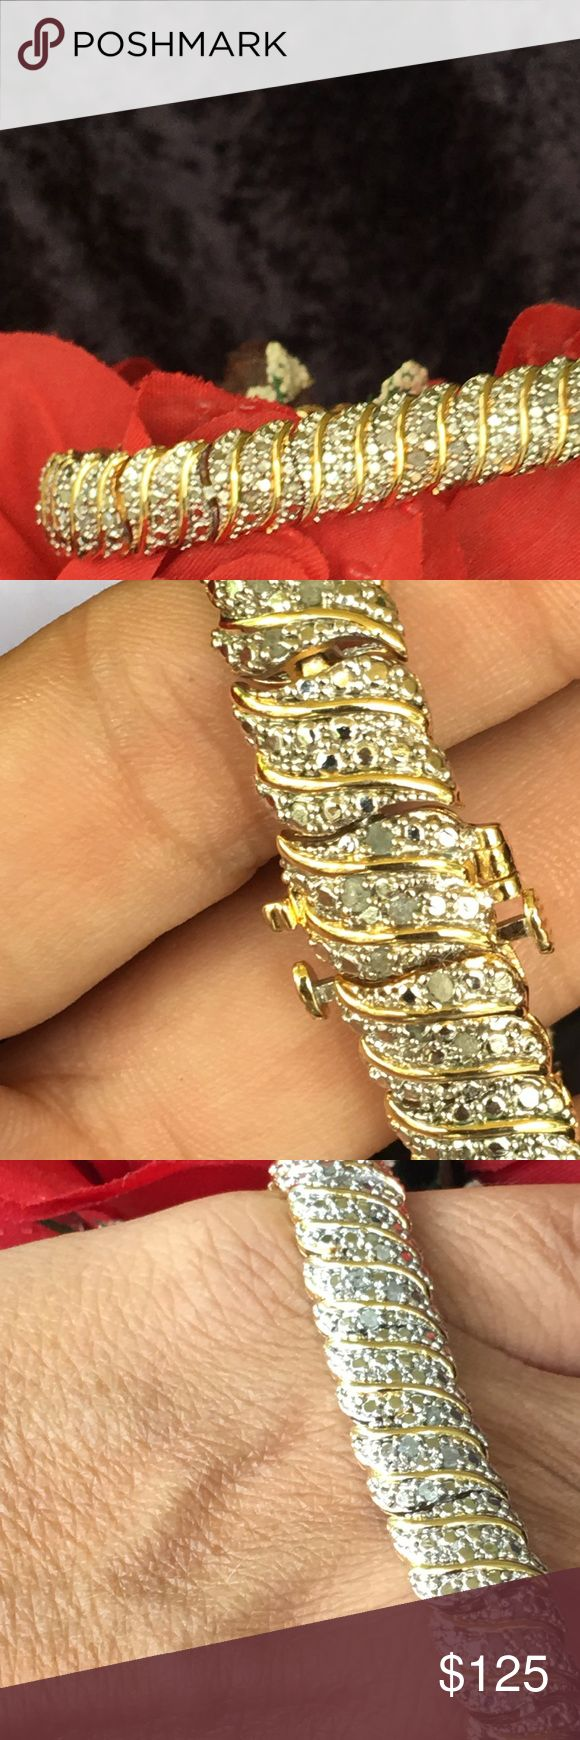 18Kt Gold Over Brass 1 carat Genuine Diamond HIGH QUALITY  18Kt Gold Over fine jewelers brass  1 carat  Genuine Diamond Bracelet with double invisible safety latch to look like non ending diamonds Jewelry Bracelets